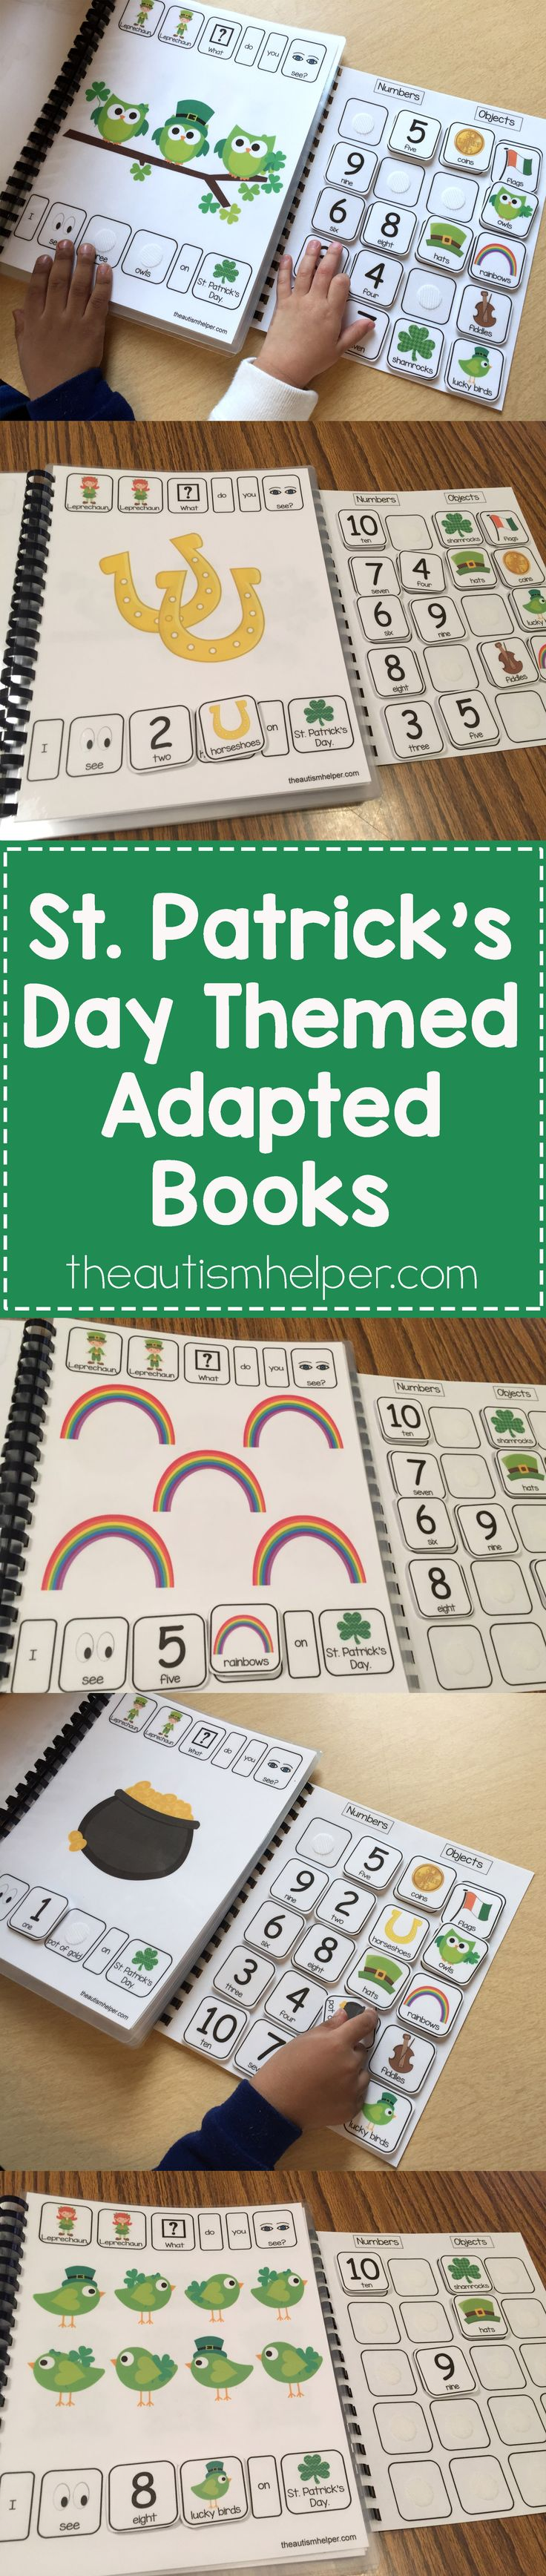 Kick off your St. Patrick's Day holiday with our holiday-themed adapted books!! From theautismhelper.com #theautismhelper